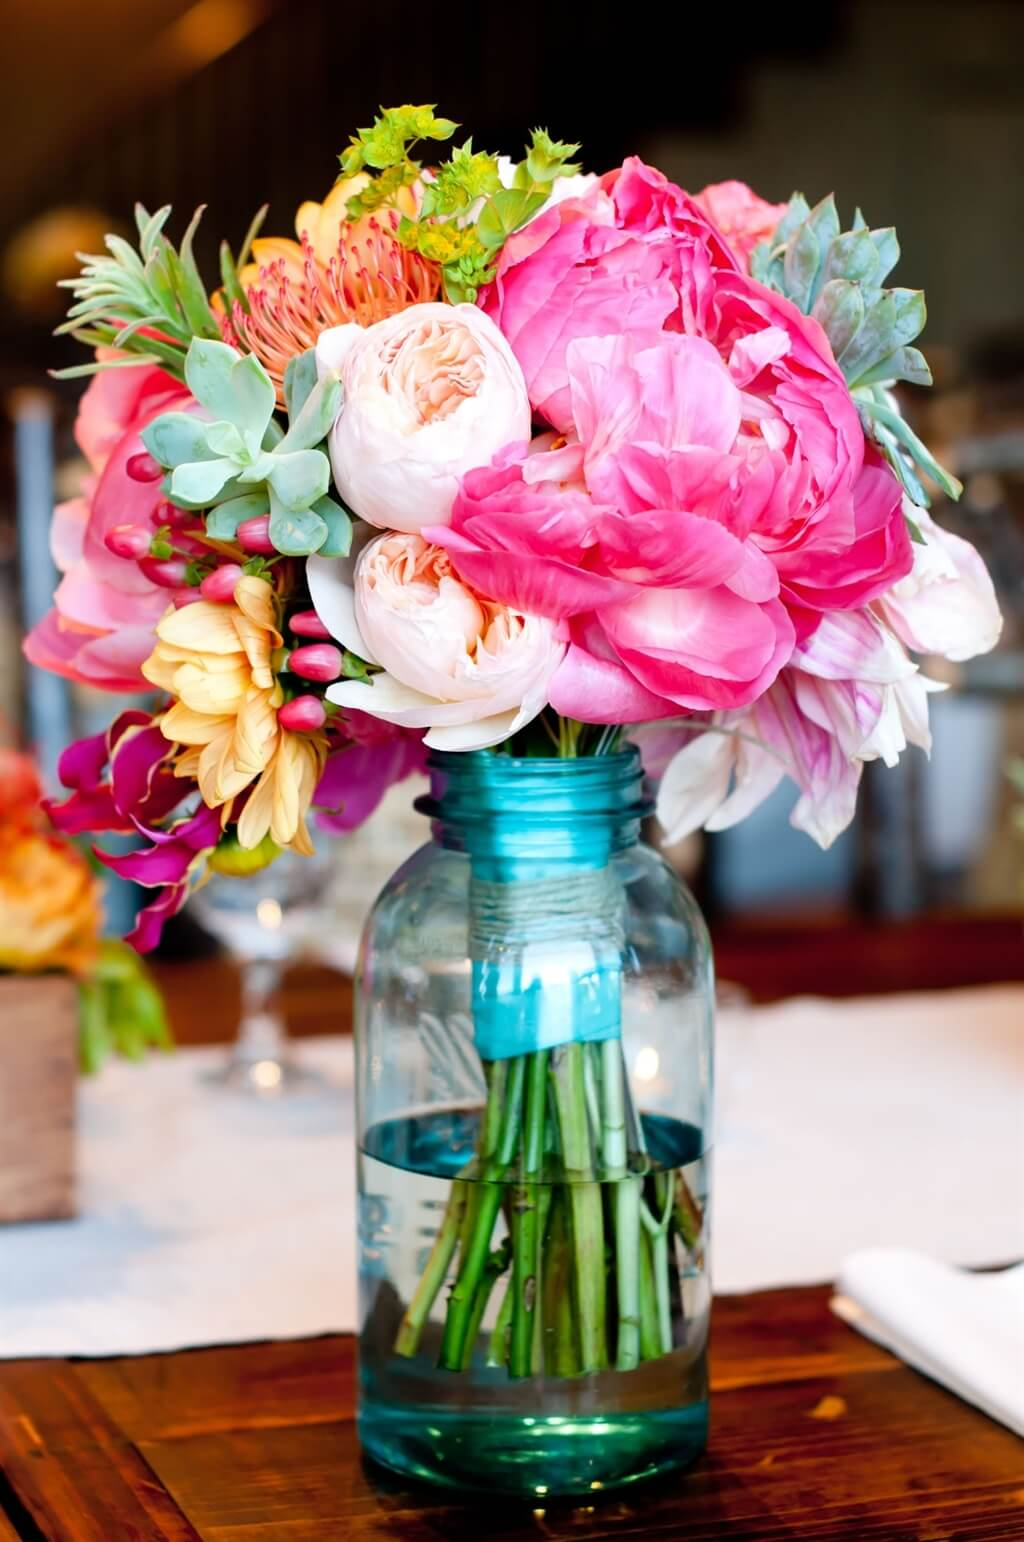 Bridesmaid's Bouquet Resting in Mason Jar